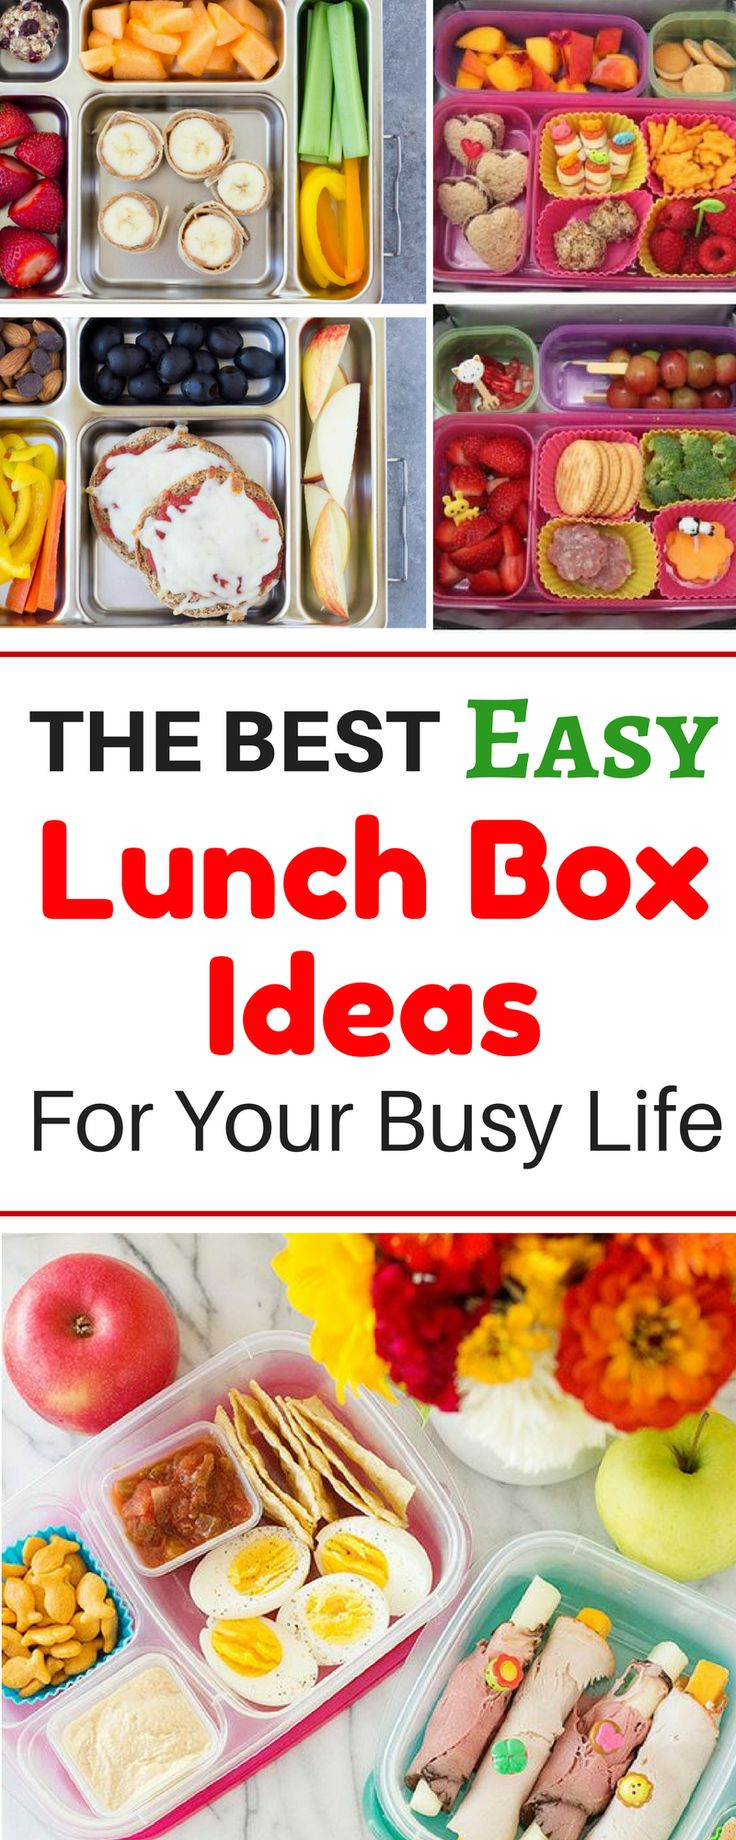 best 25 creative school lunches ideas on pinterest hacks videos kids school lunch ideas and. Black Bedroom Furniture Sets. Home Design Ideas